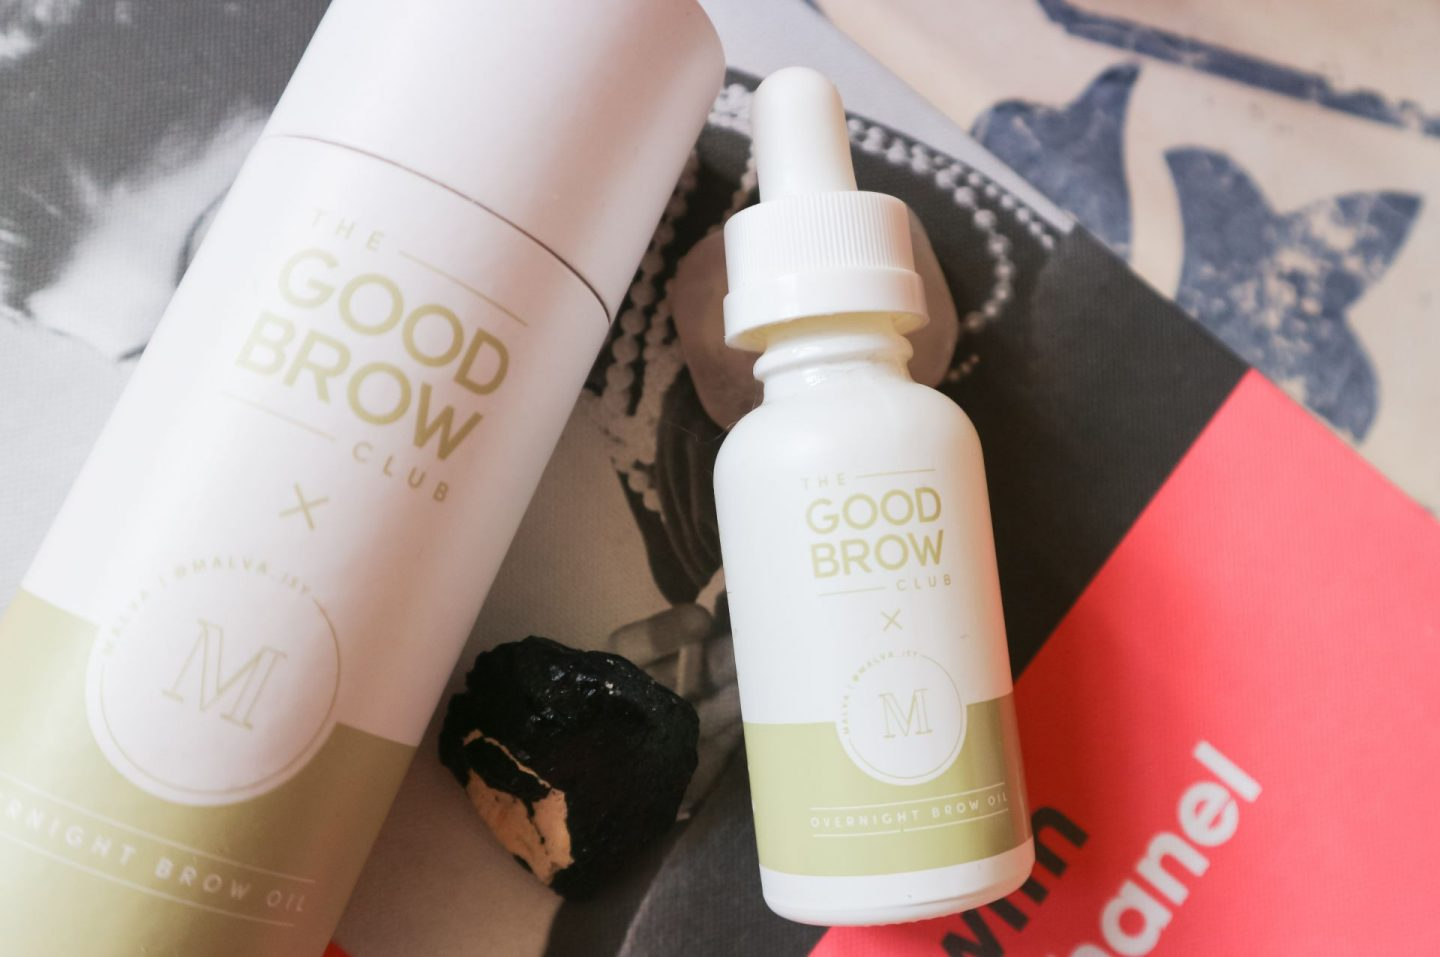 The Good Brow Club Overnight Brow Oil